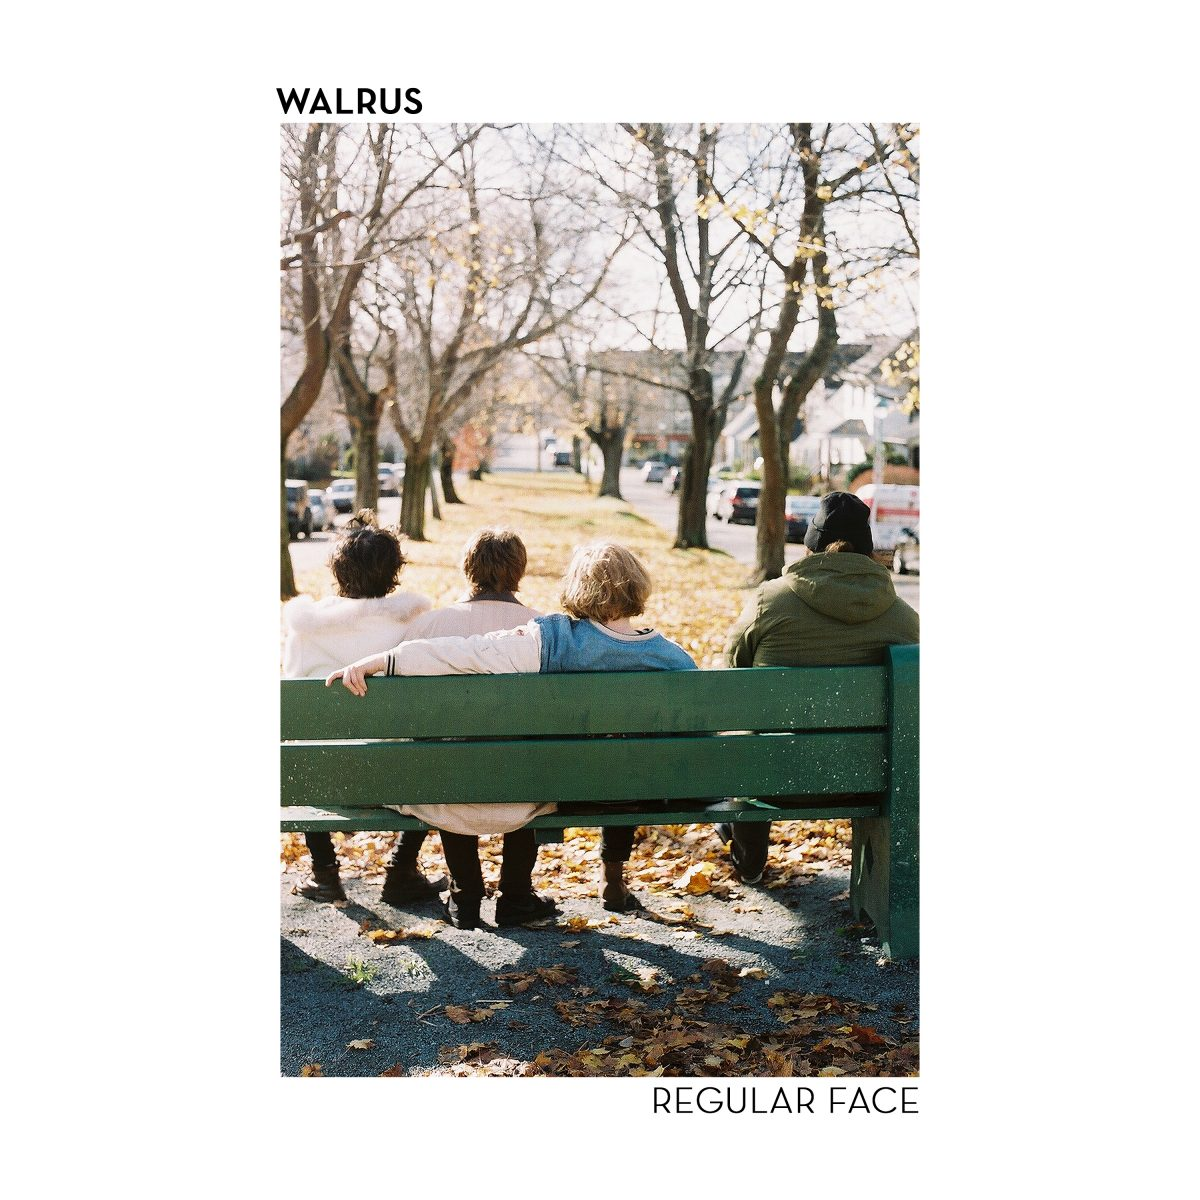 "NEW WALRUS SINGLE ""REGULAR FACE"" AND TOUR DATES ANNOUNCED"